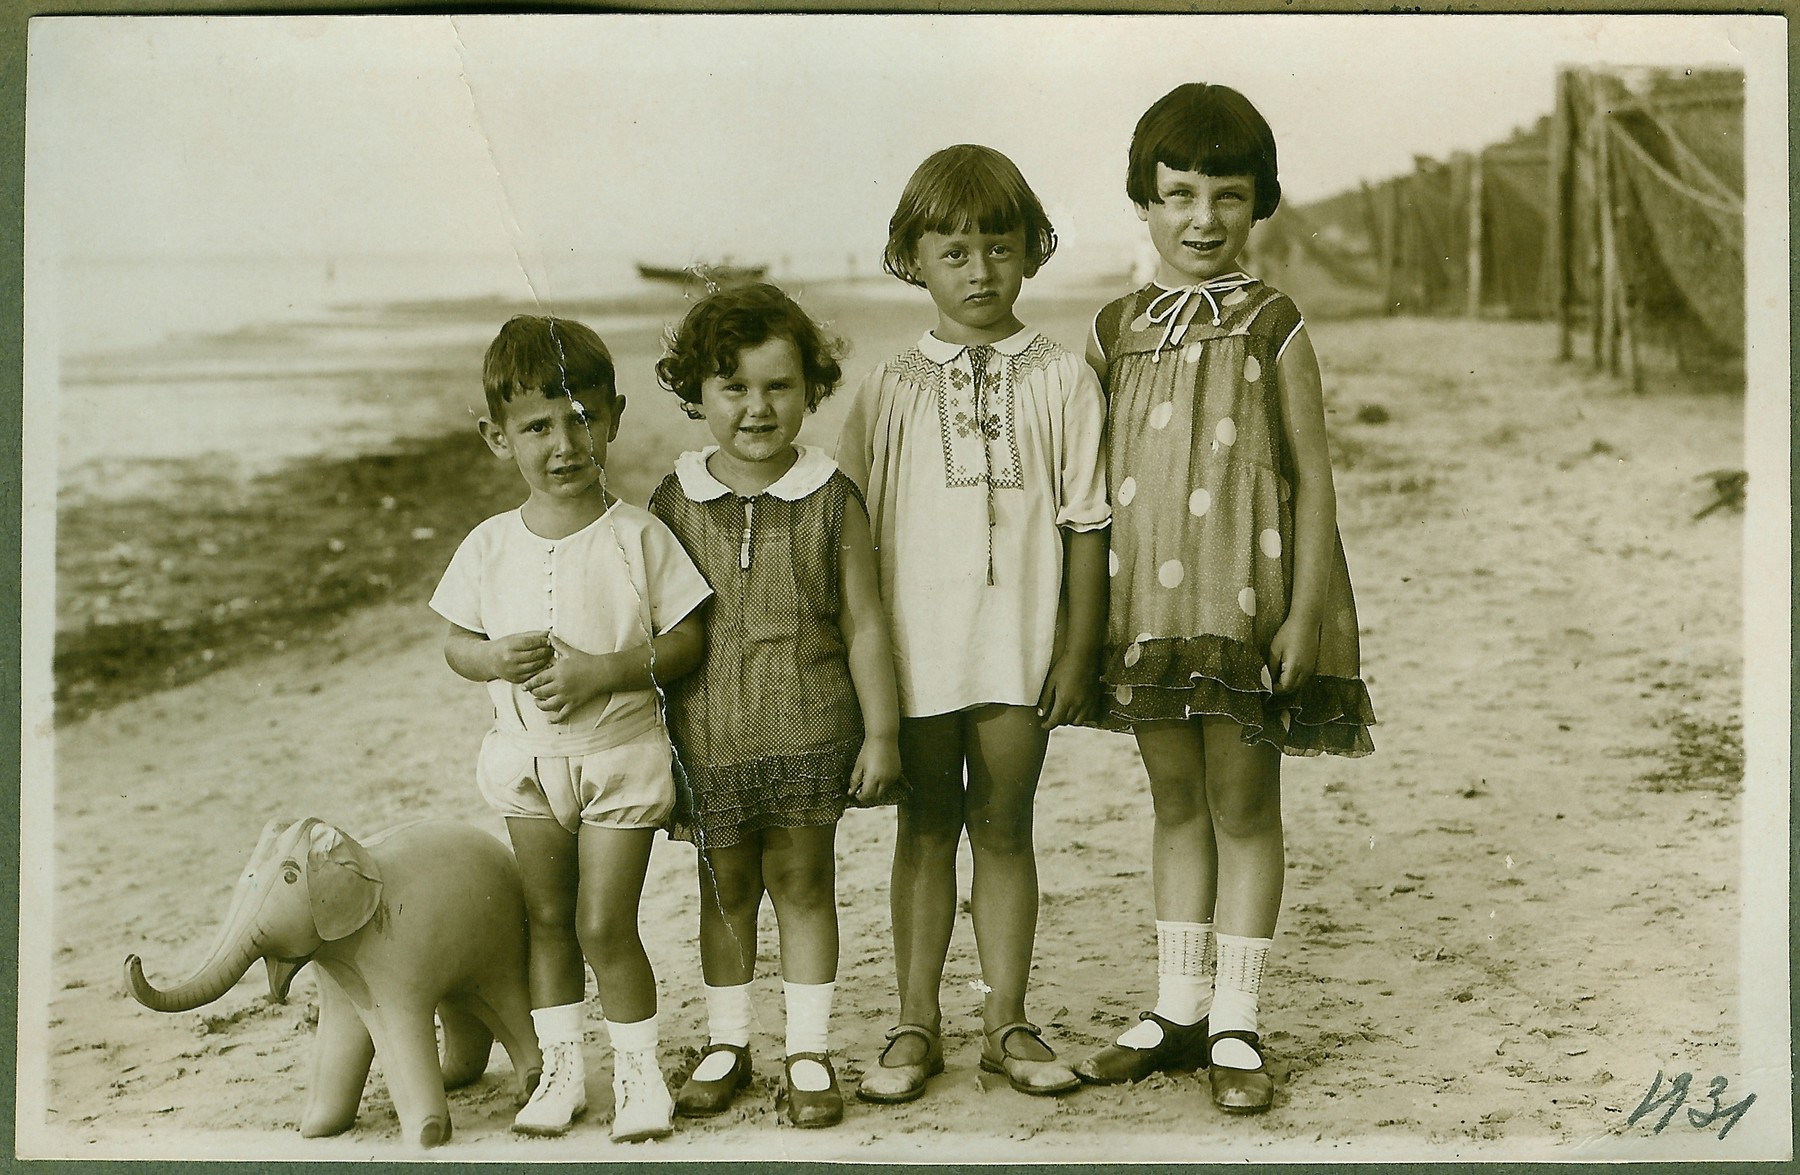 Four young children stand in a row next to a toy elephant on the Latvian shore.  Dmitri Kopelman is pictured on the far left.